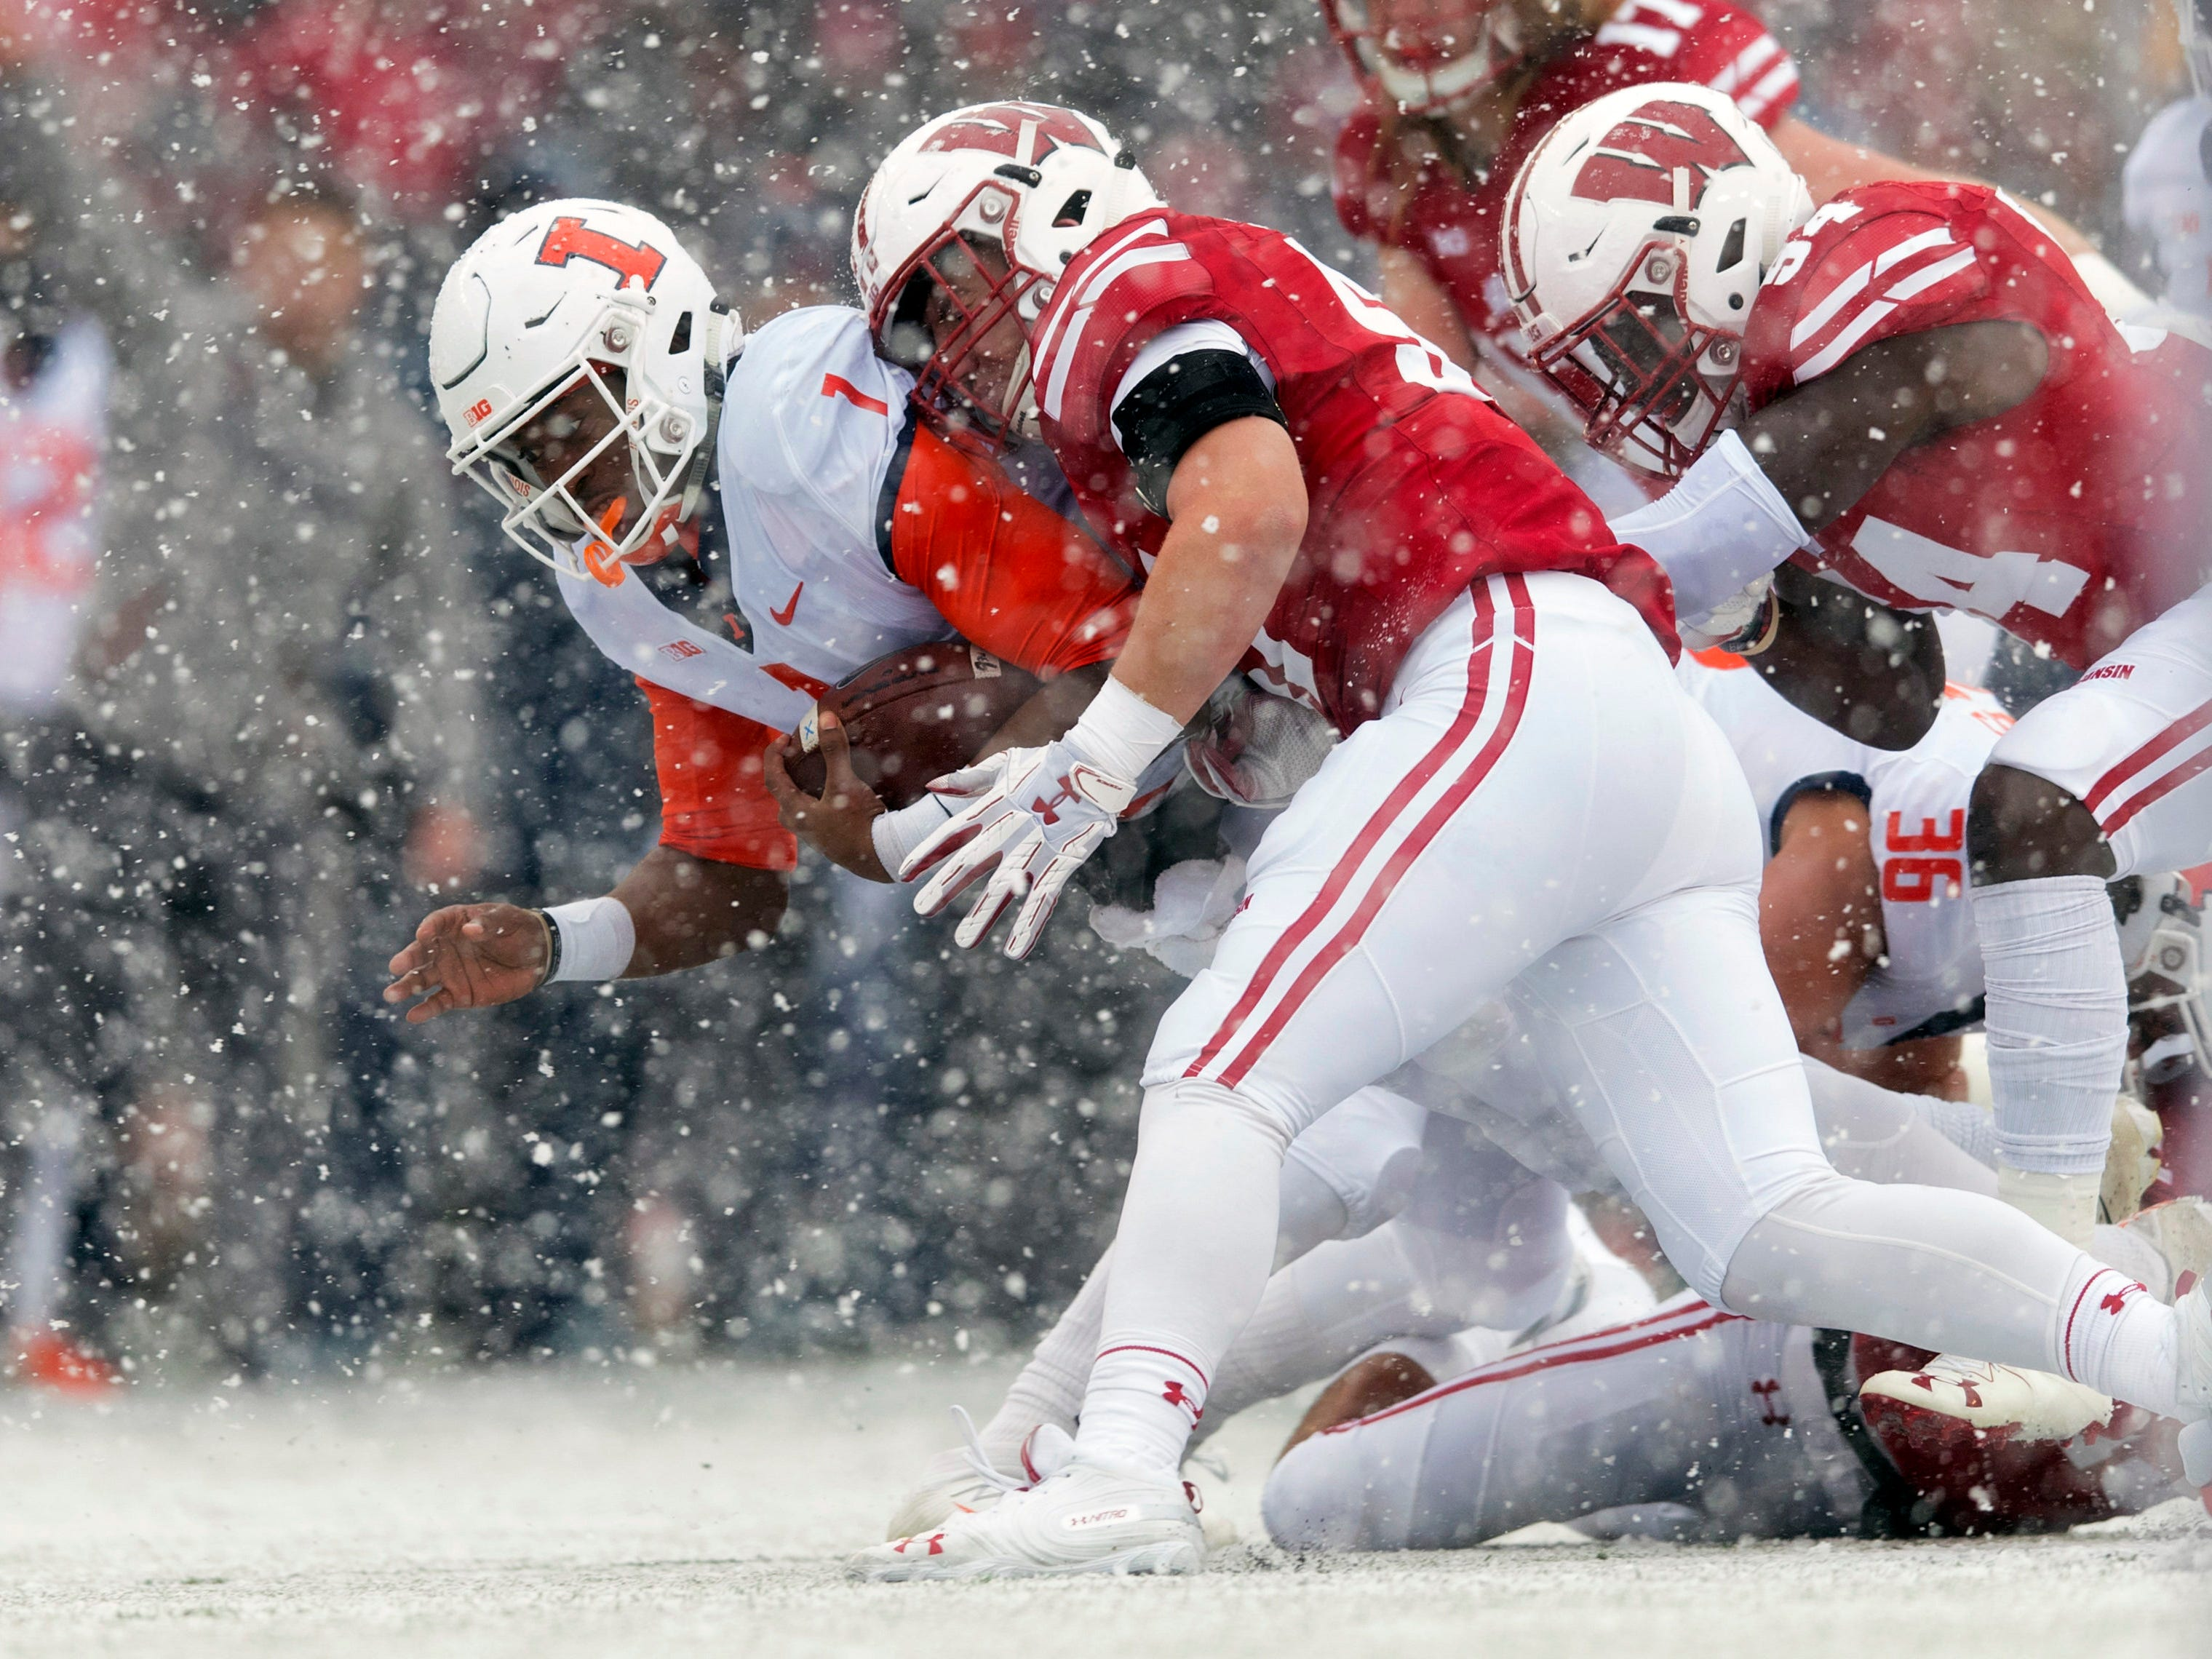 Wisconson defenders wrap up Illinois quarterback AJ Bush Jr. during the first half as the snow flies.